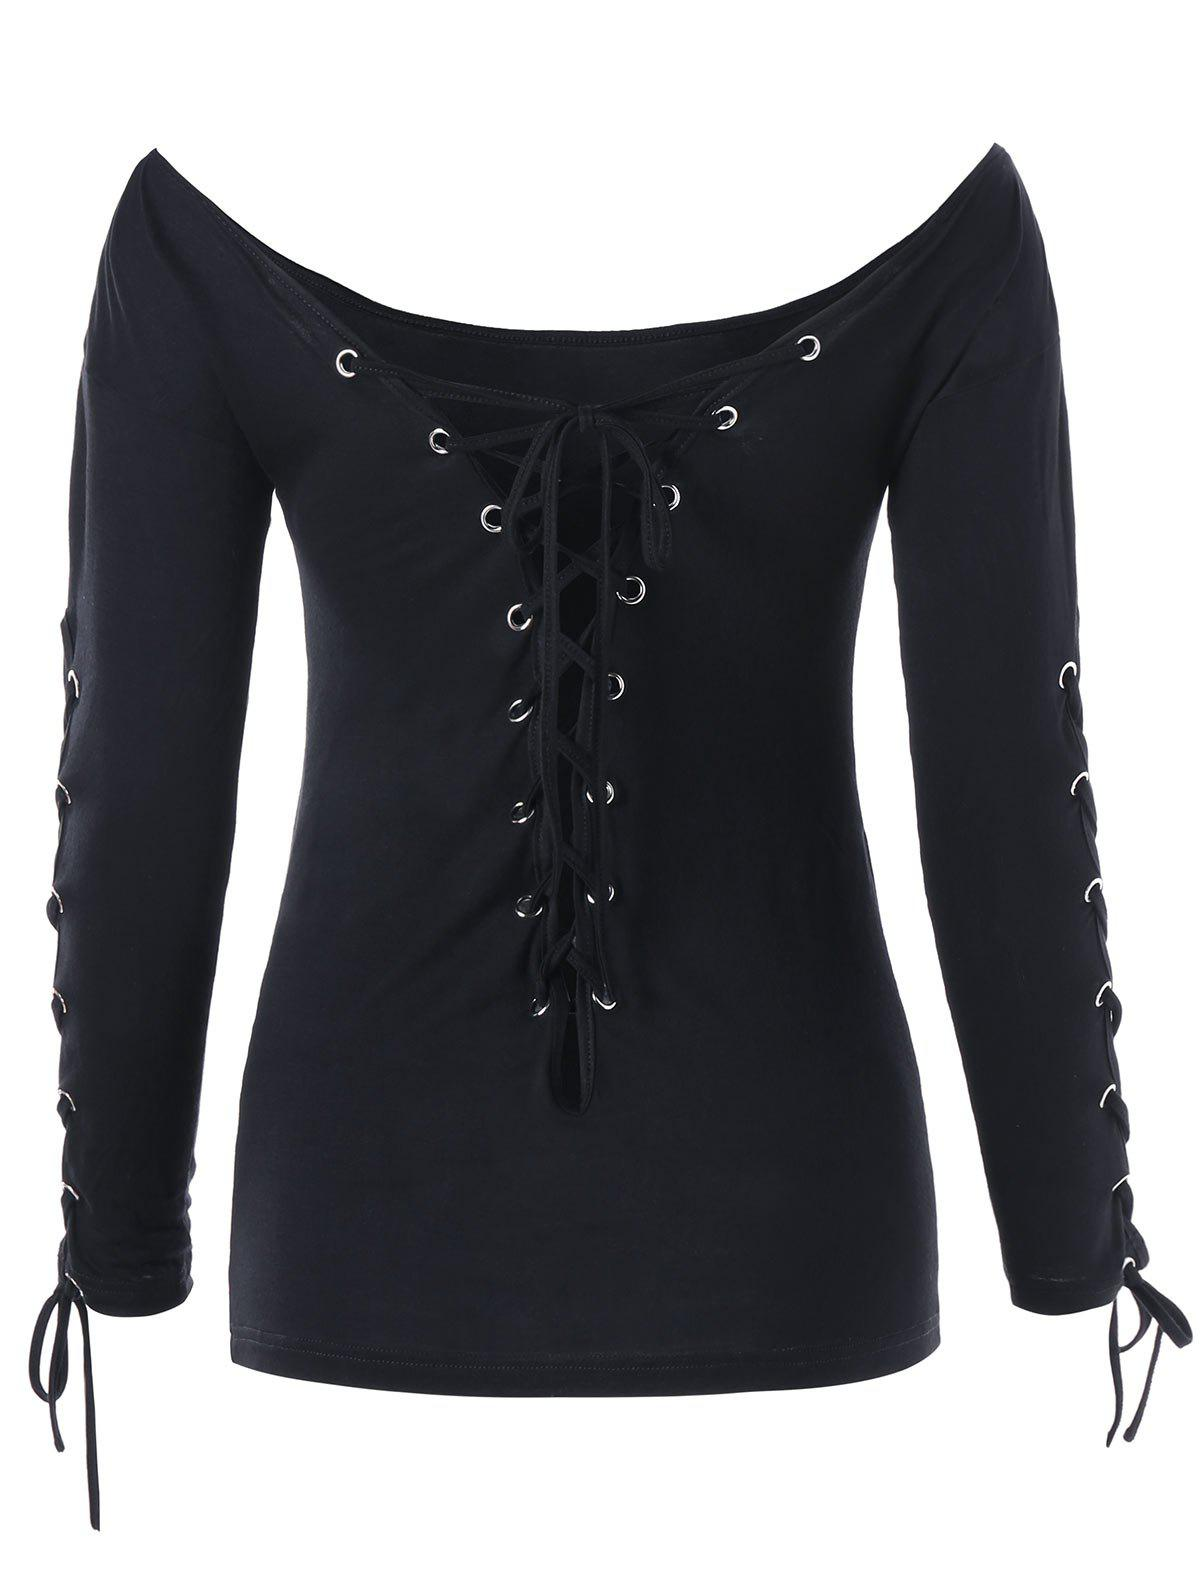 Halloween Off The Shoulder Lace Up Top - BLACK XL